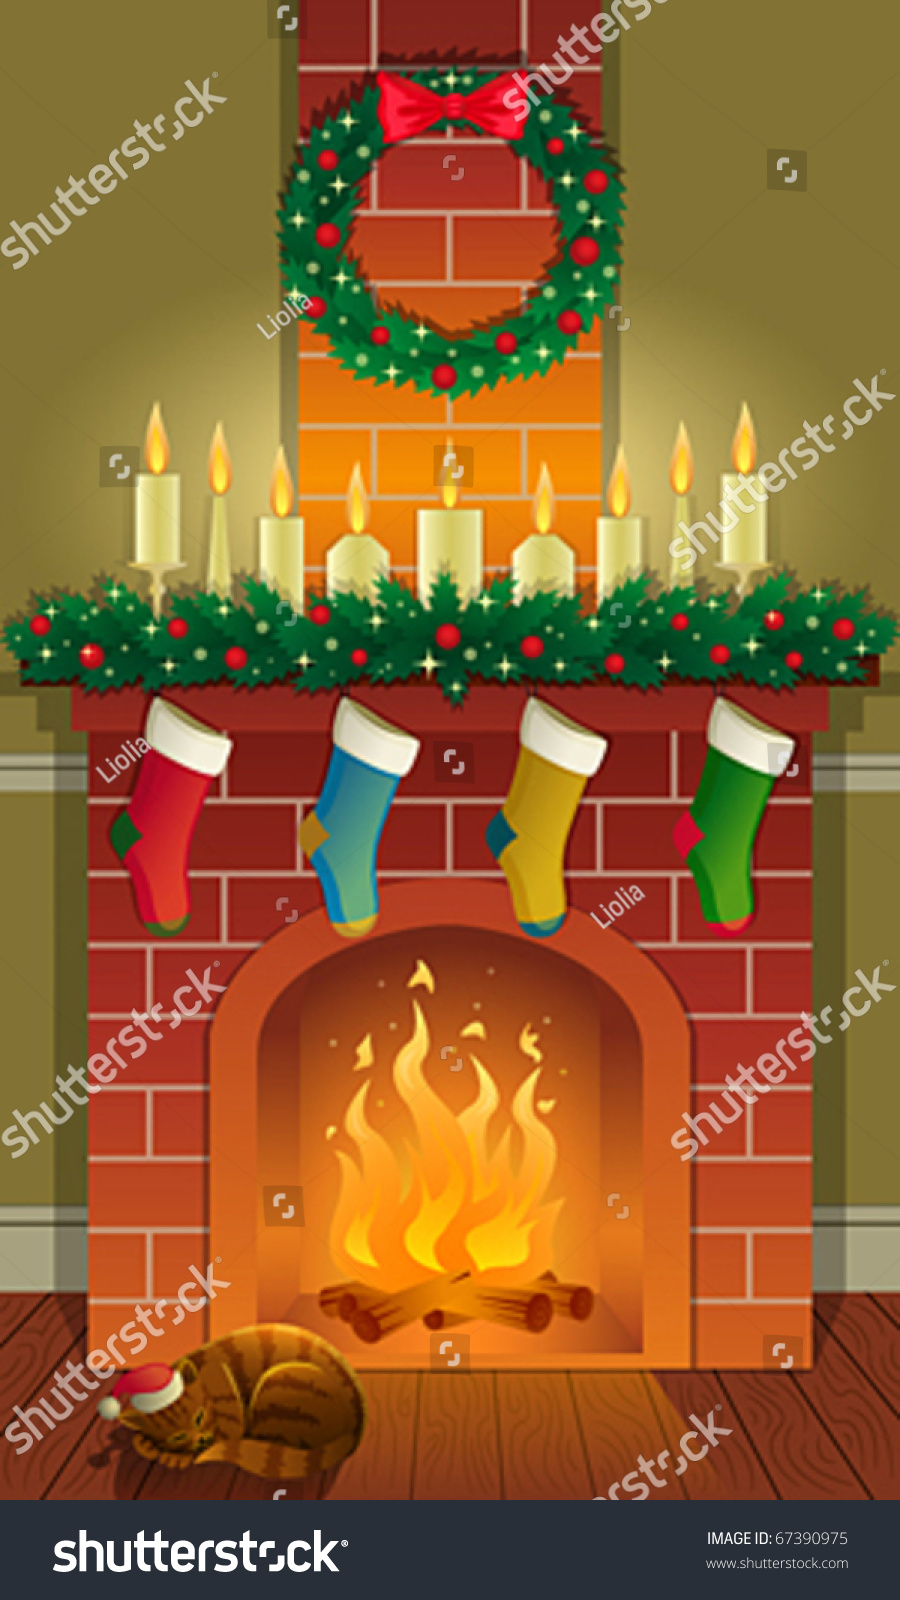 Christmas Fireplace Stock Vector Illustration 67390975 : Shutterstock